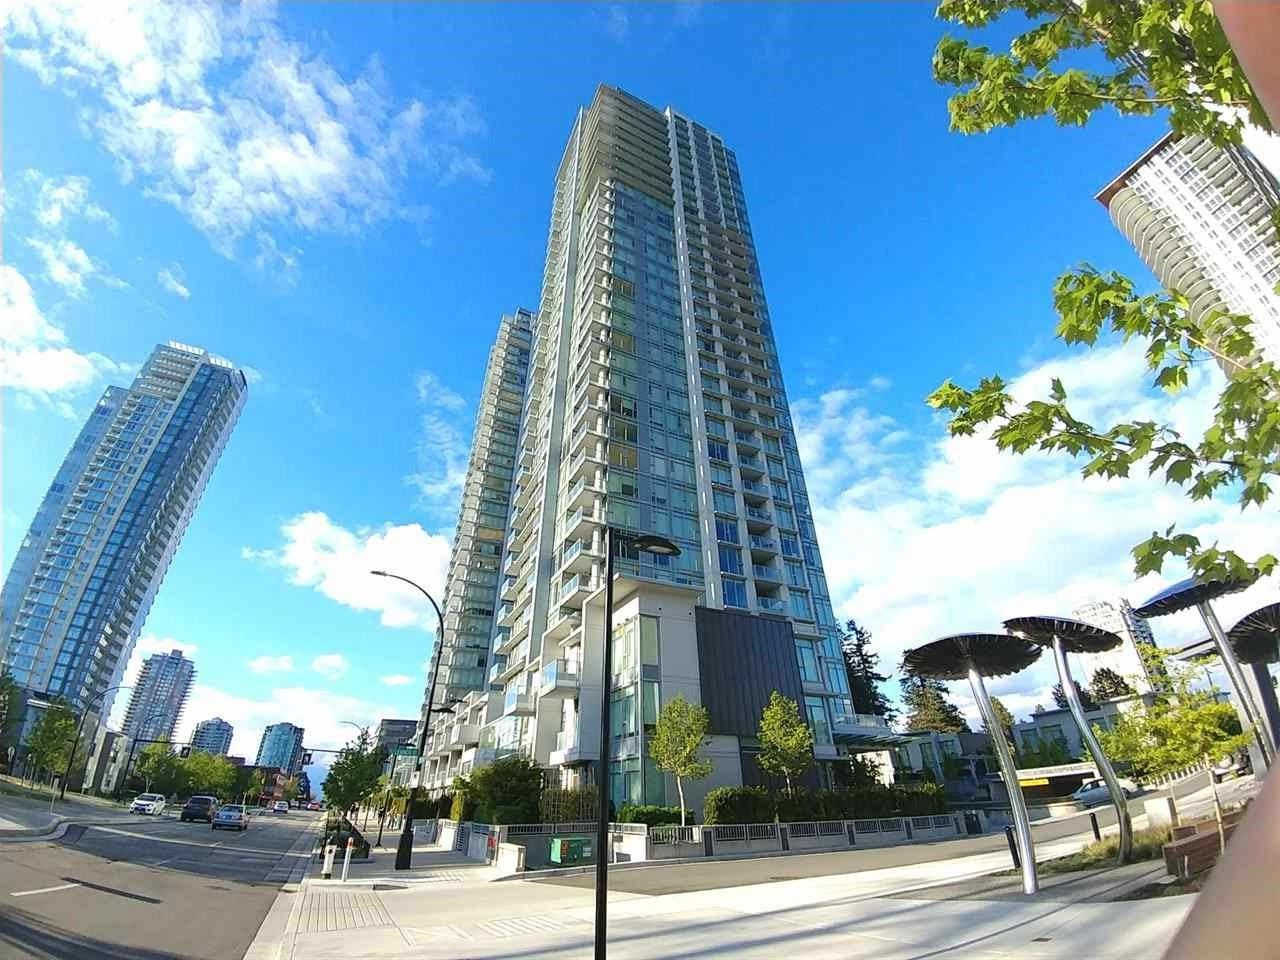 """Main Photo: 2807 6588 NELSON Avenue in Burnaby: Metrotown Condo for sale in """"MET 1"""" (Burnaby South)  : MLS®# R2264950"""